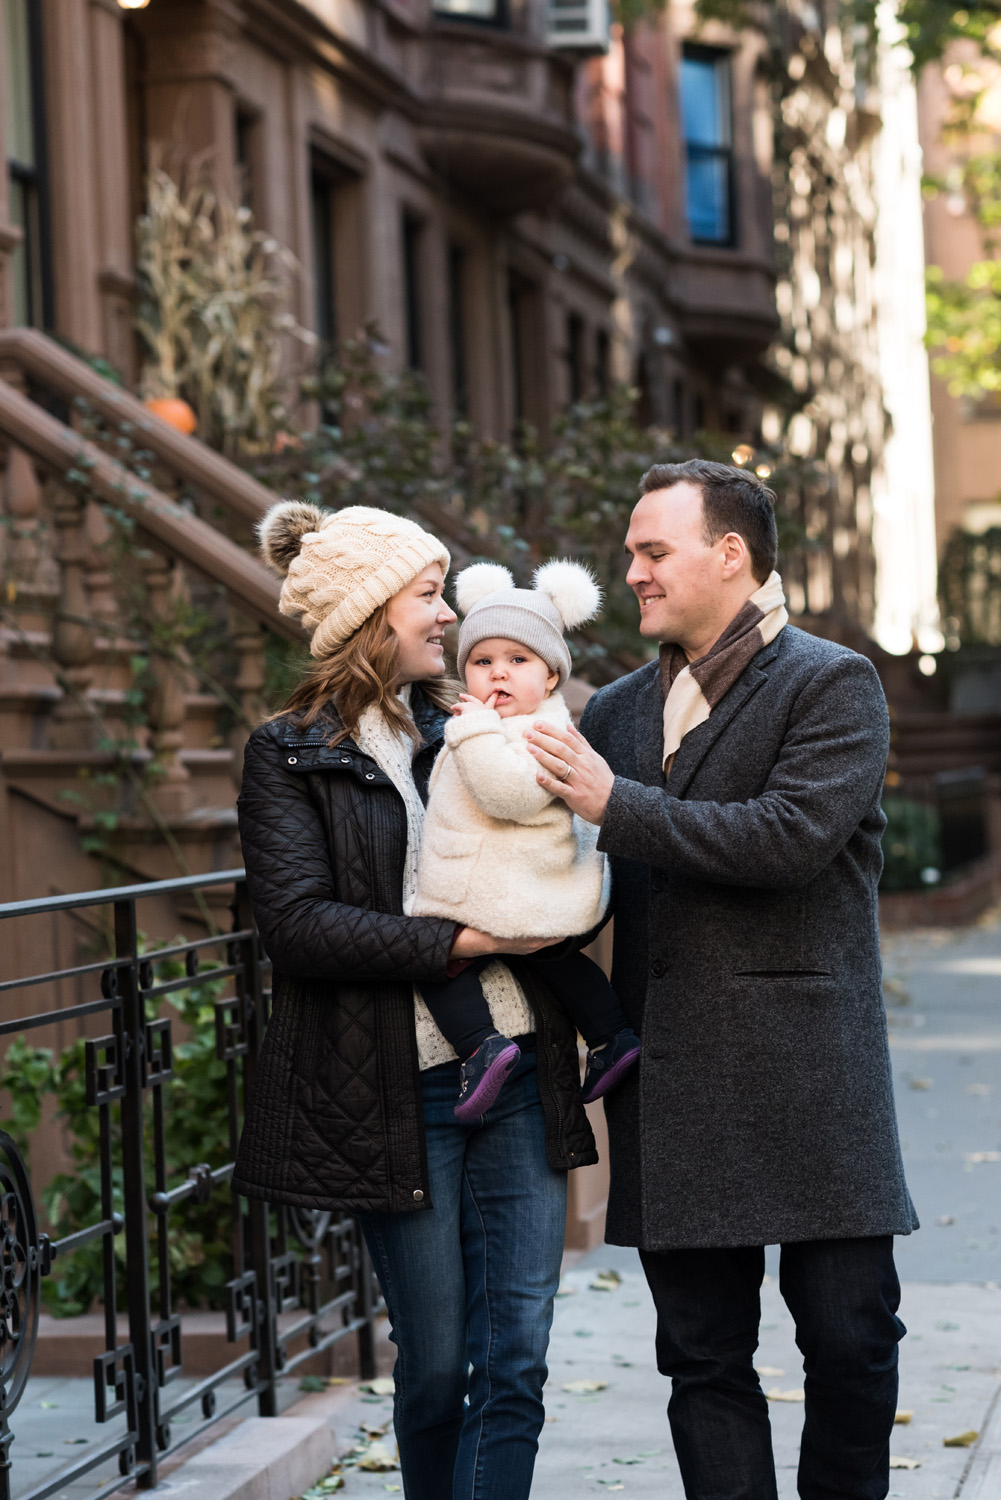 nyc family photographer-11112017_46.jpg